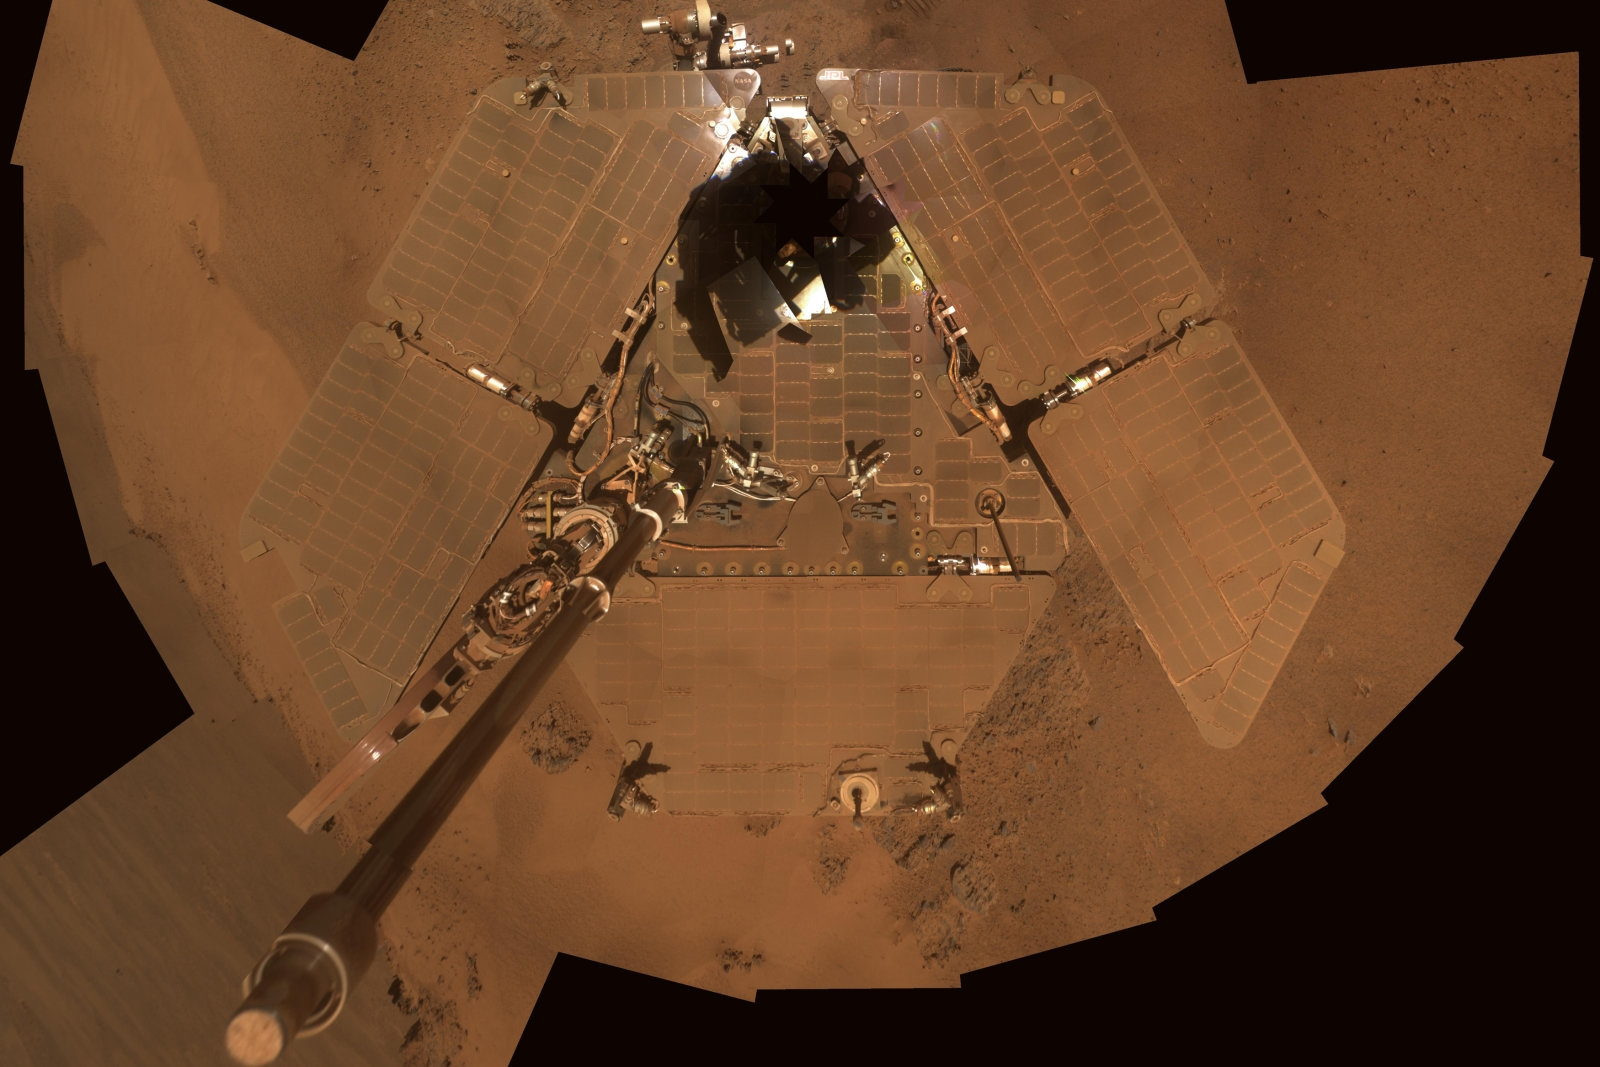 Opportunity rover stops responding during Mars dust storm | DeviceDaily.com